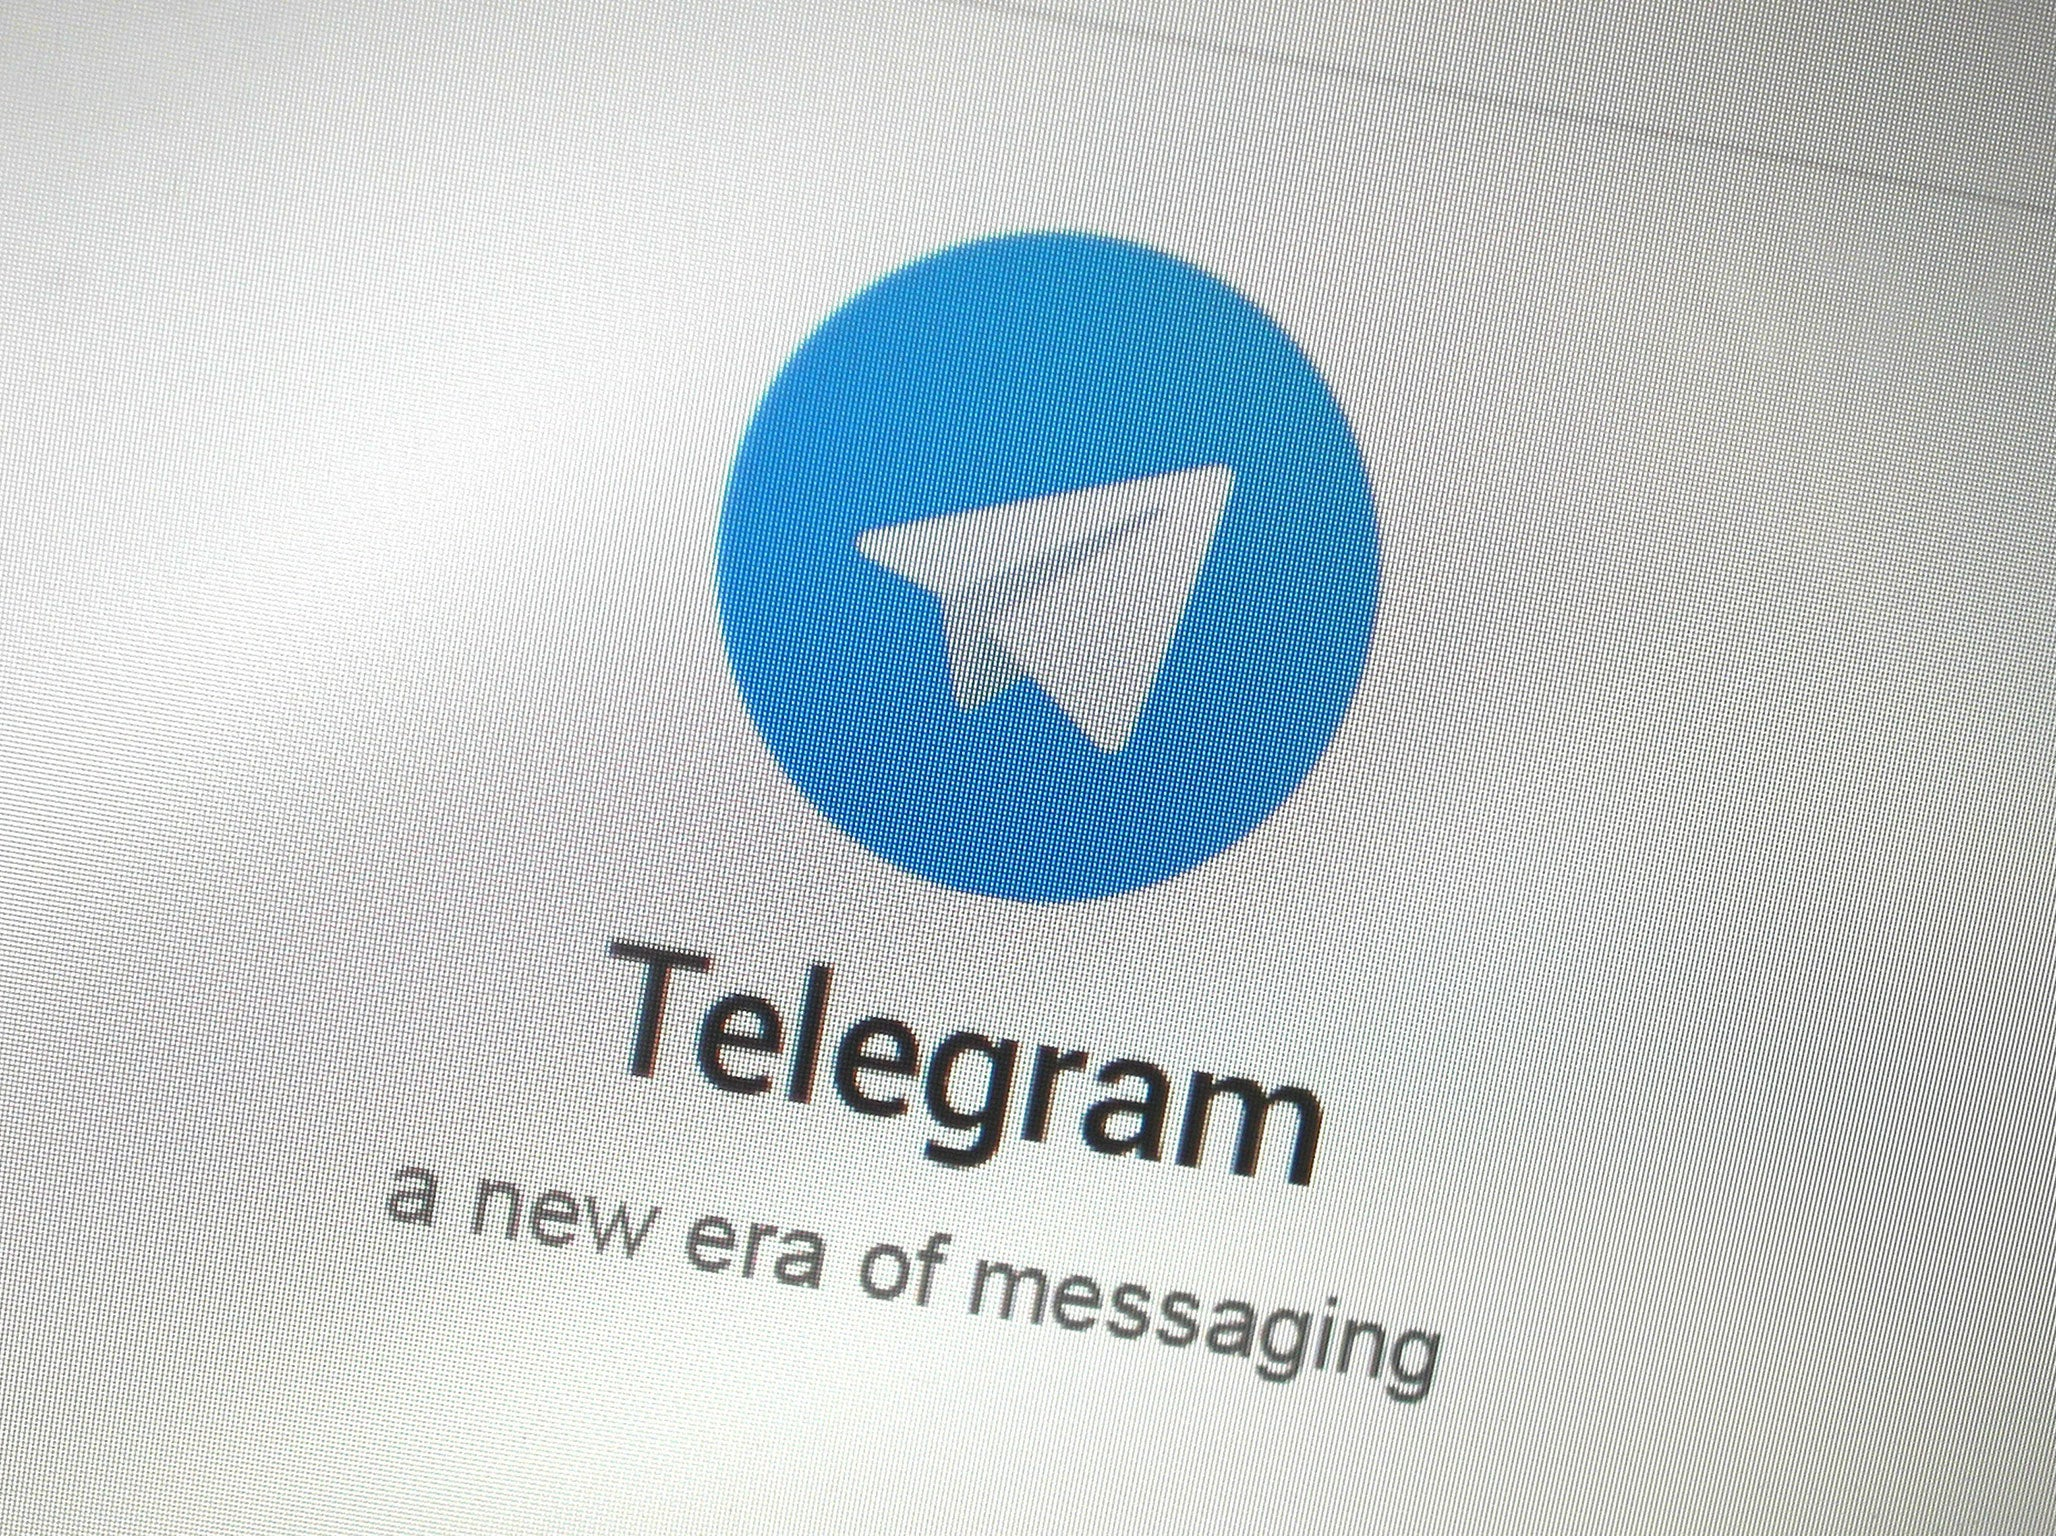 The best: gadget news is a telegram tech channel